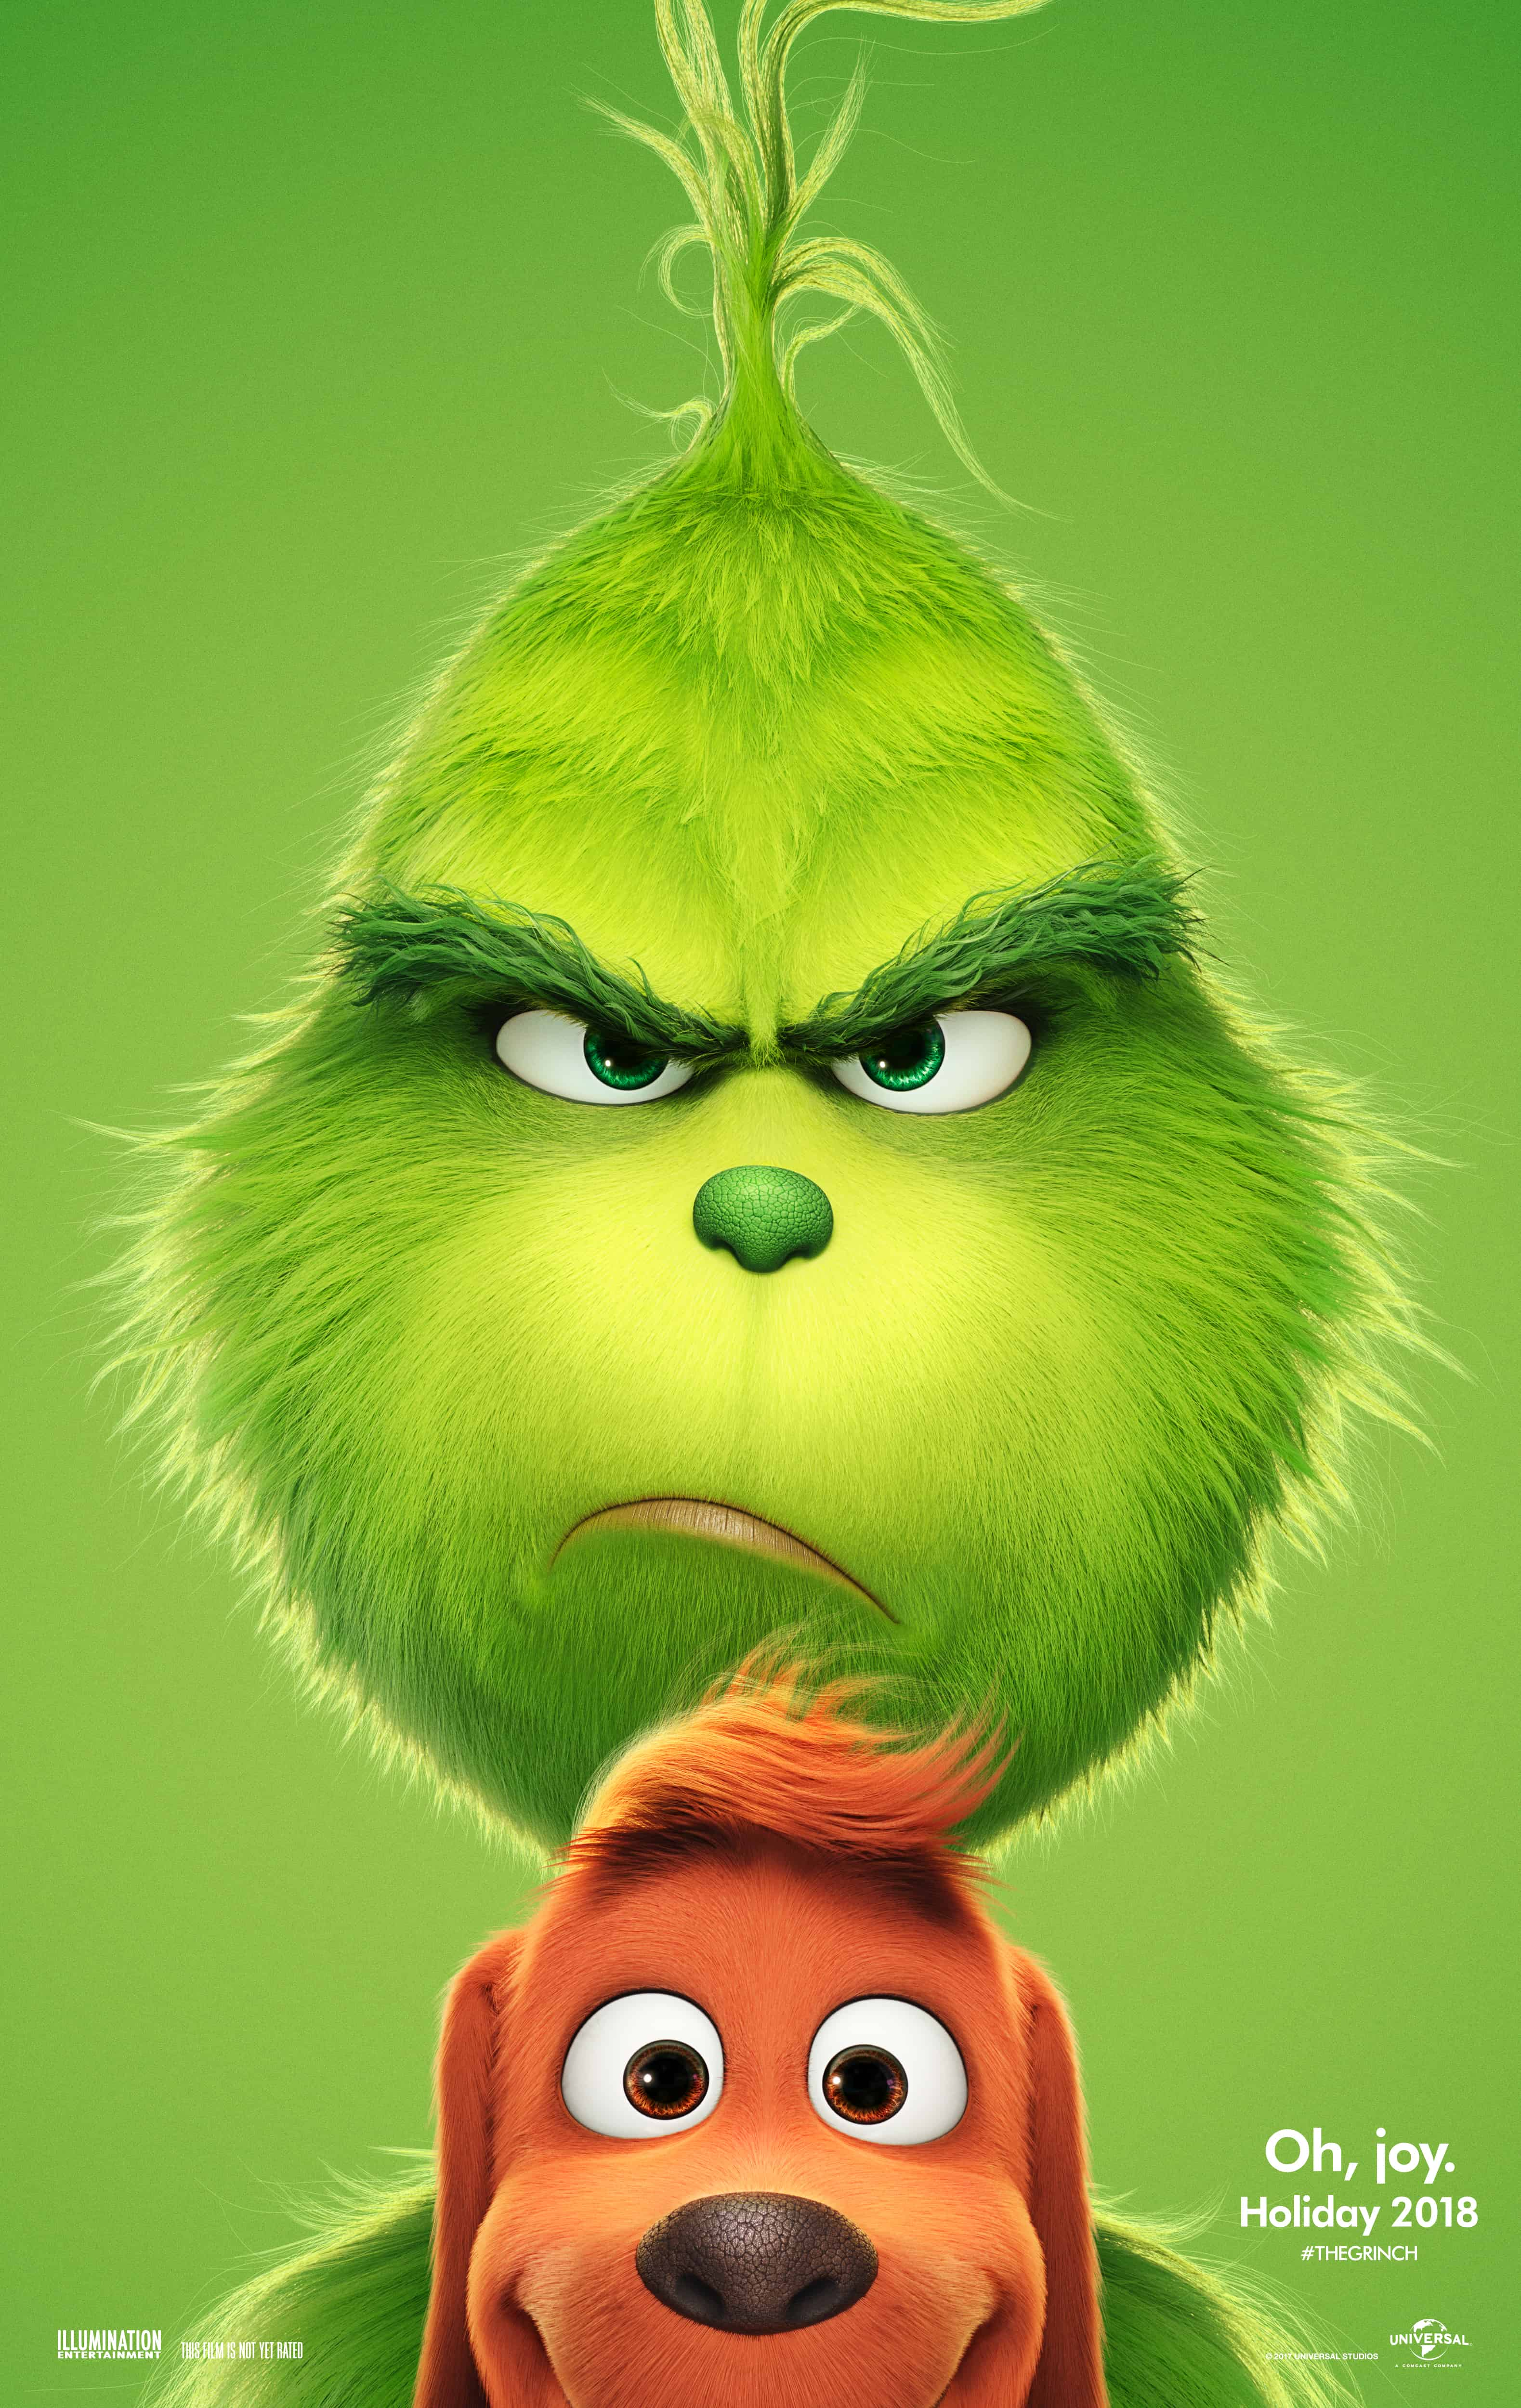 The Grinch In Theaters November 9th